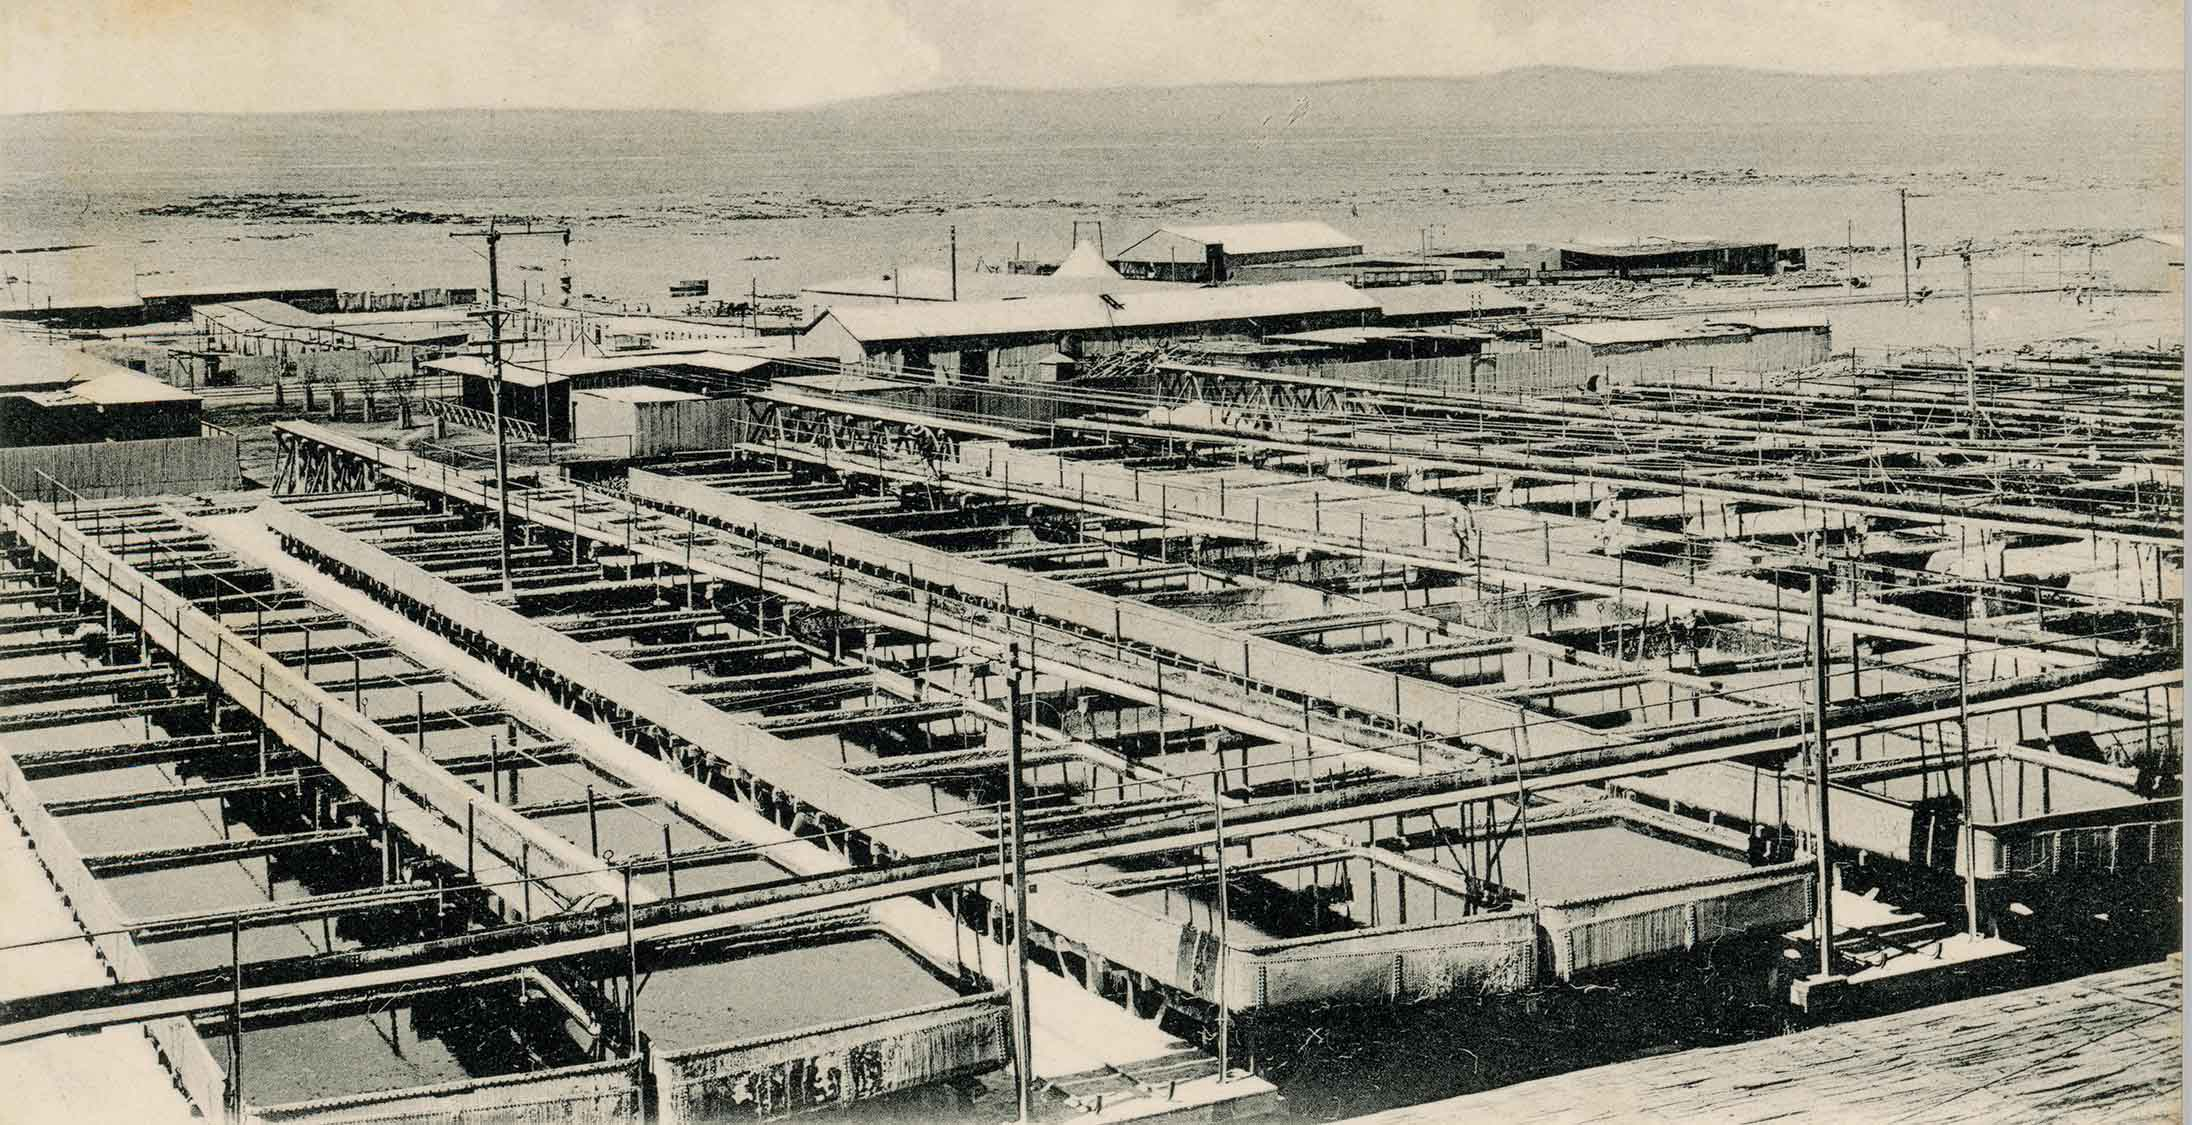 Enterreno - Fotos históricas de chile - fotos antiguas de Chile - Oficina Agustín Edwards de Antofagasta ca. 1920